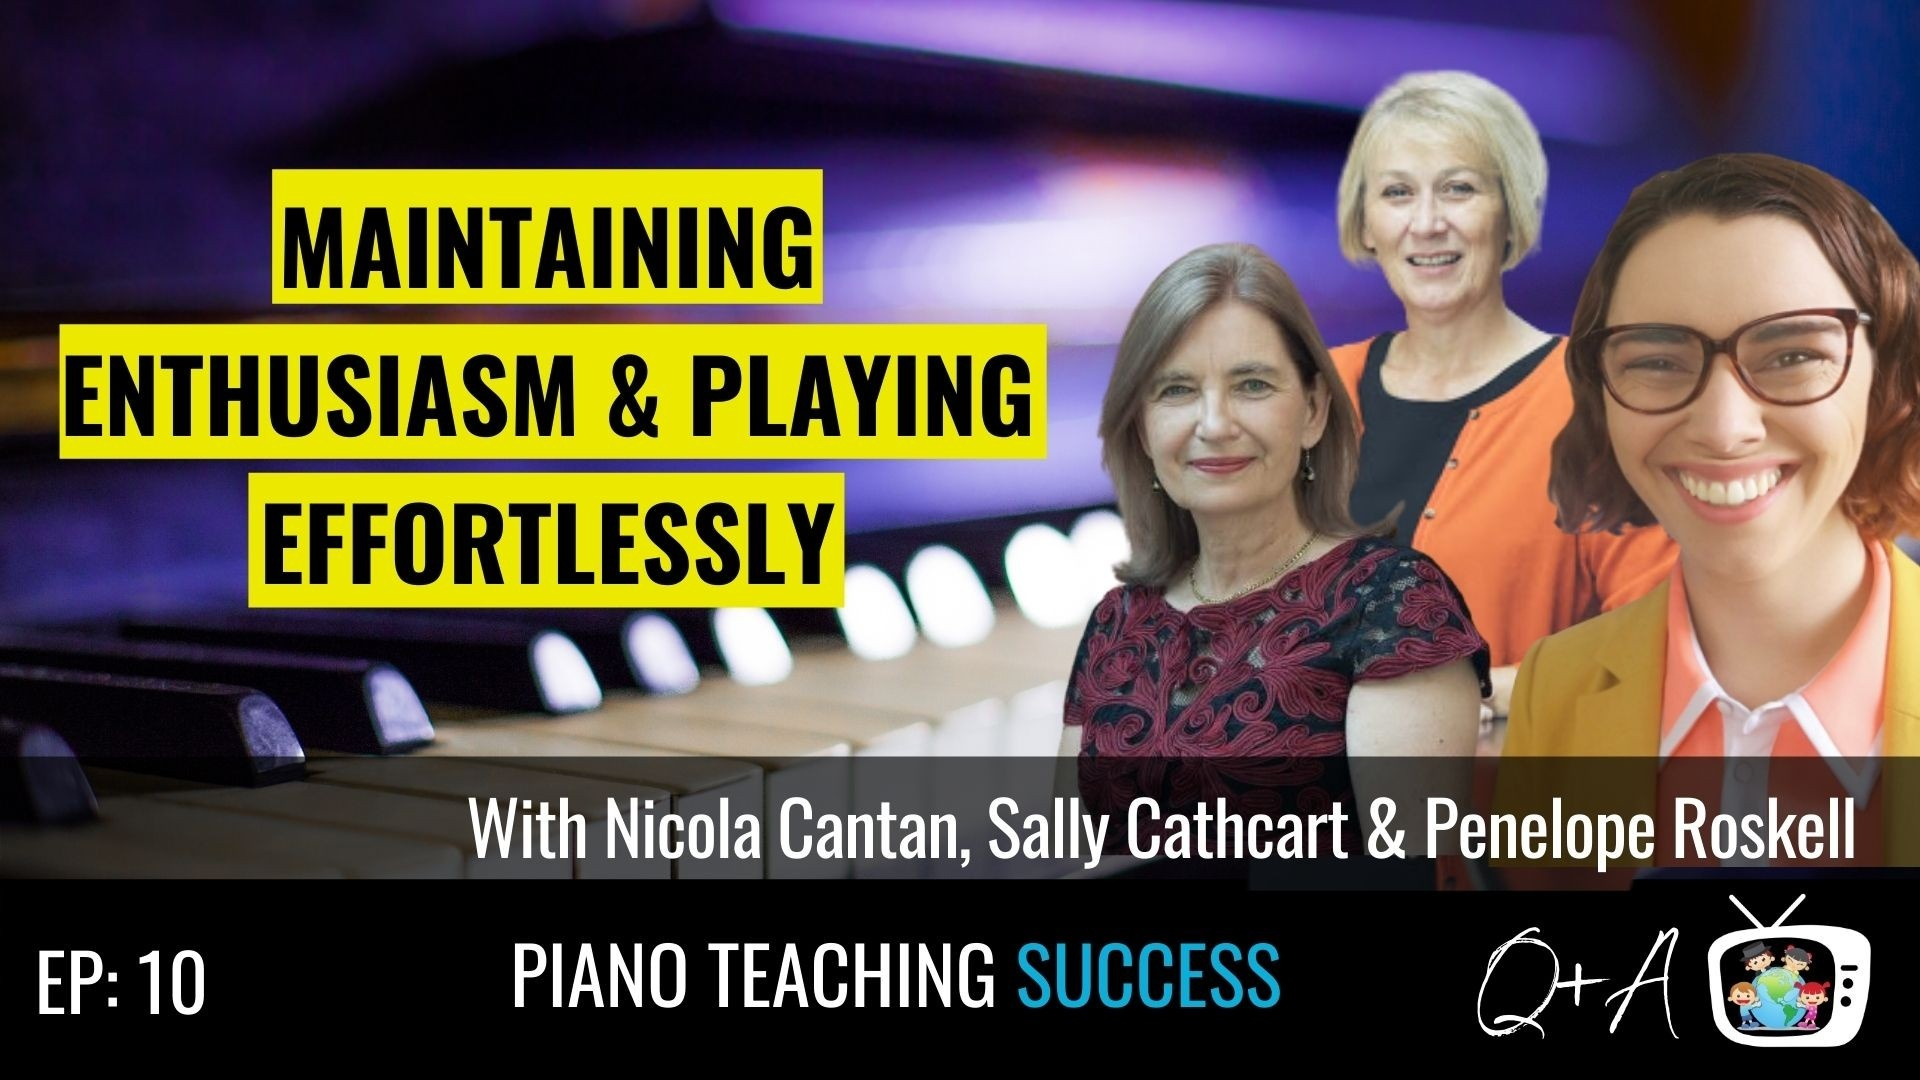 Nicola Cantan, Sally Cathcart, Penelope Roskell